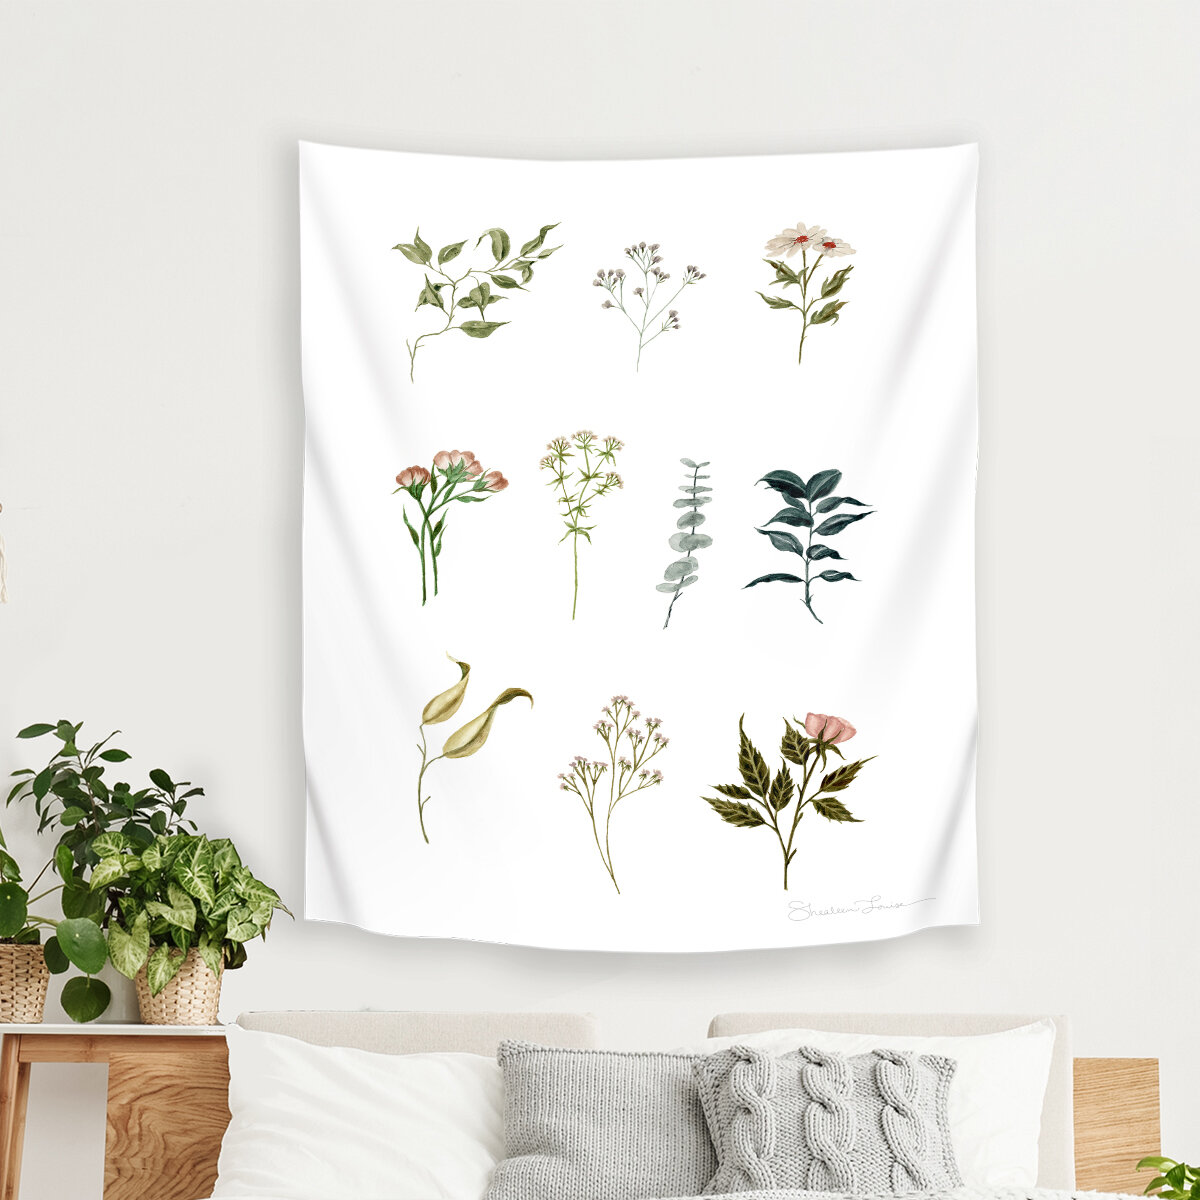 East Urban Home Shealeen Louise Delicate Botanical Pieces Tapestry Wayfair